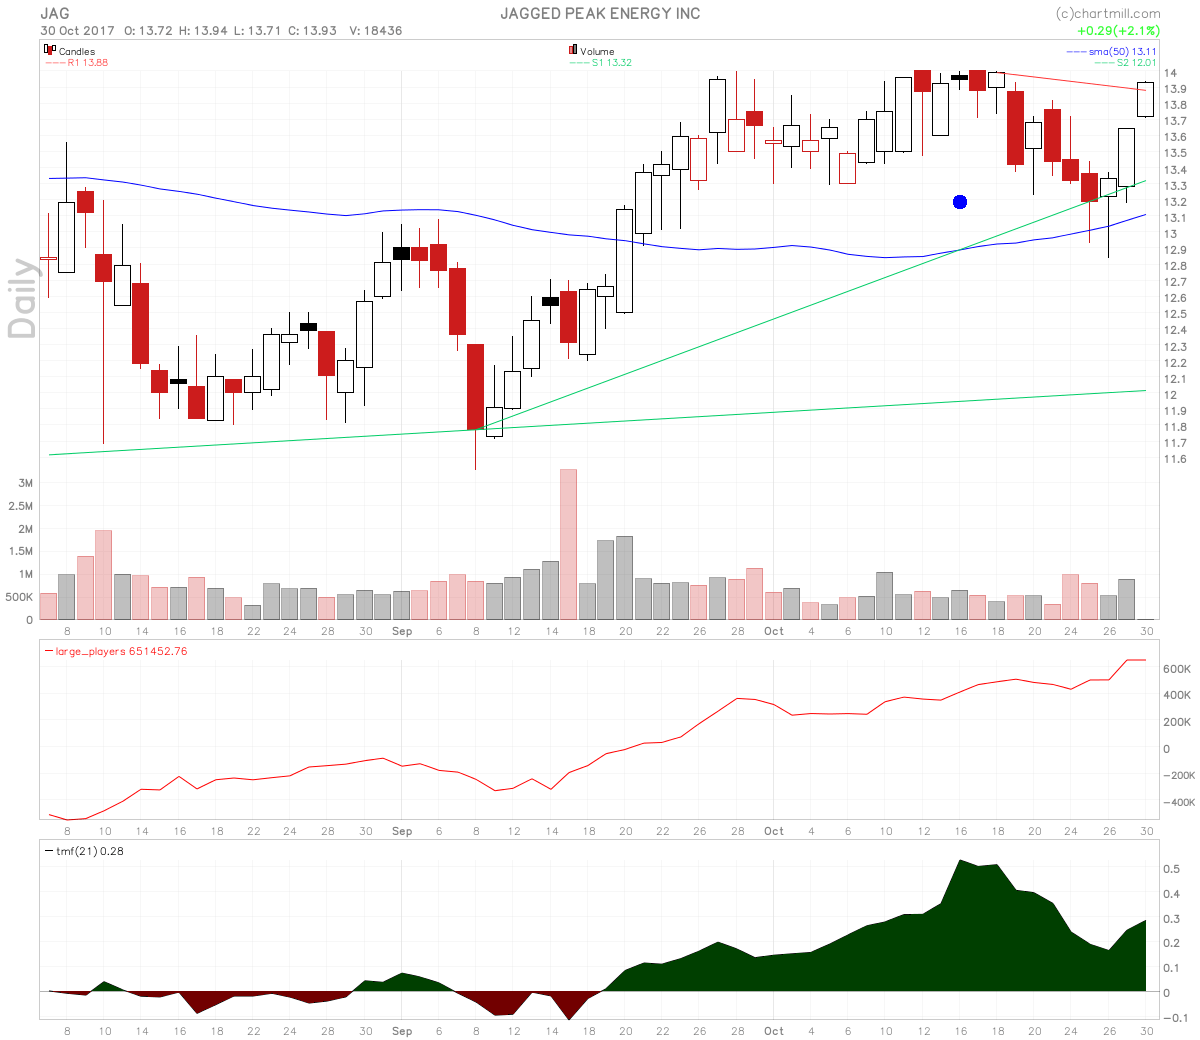 Jagged Peach Energy stock has a positive divergence on large players volume.